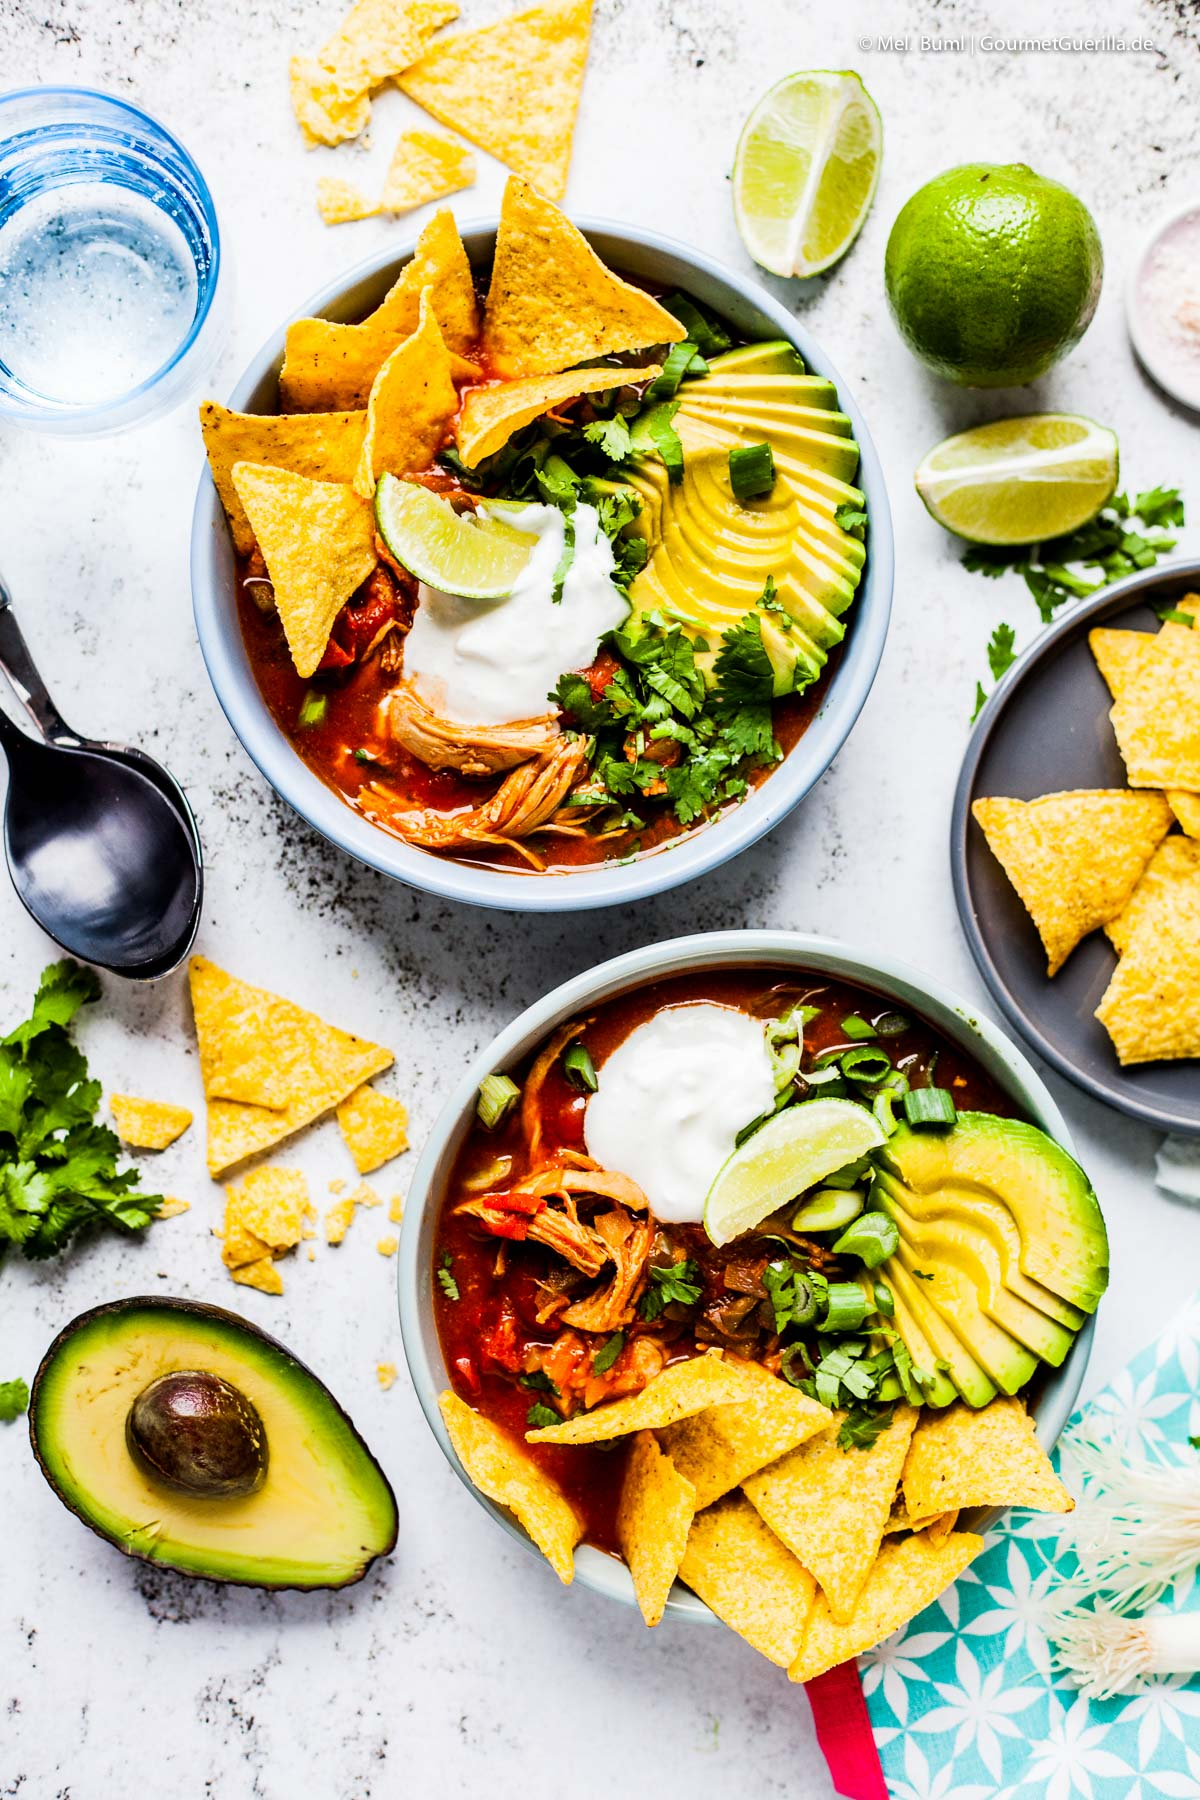 Mexican tortilla soup with avocado and chipotle | GourmetGuerilla.com